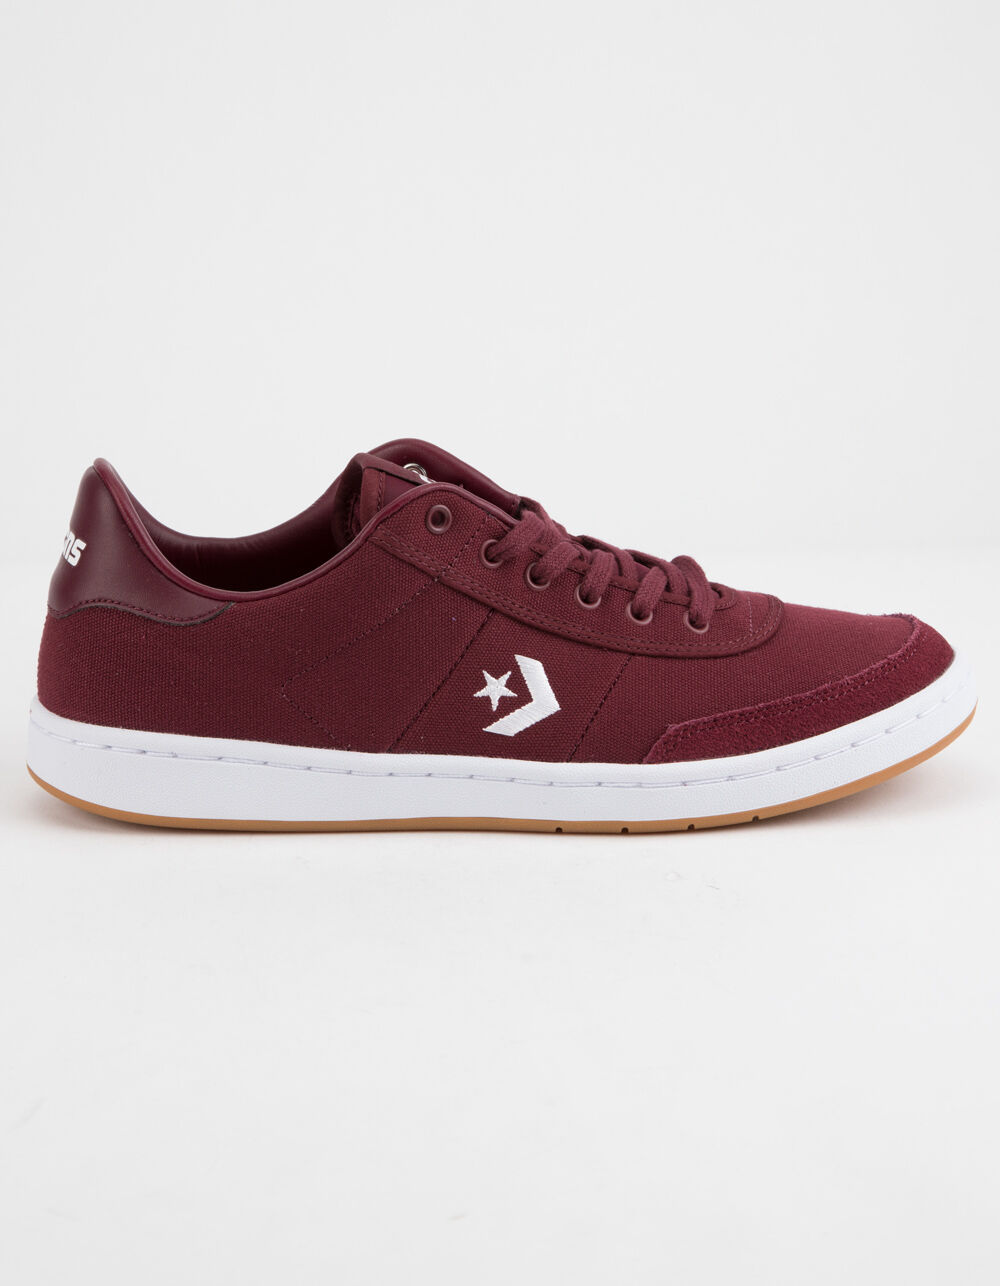 Image of CONVERSE BARCELONA PRO LOW TOP BURGUNDY & WHITE SHOES